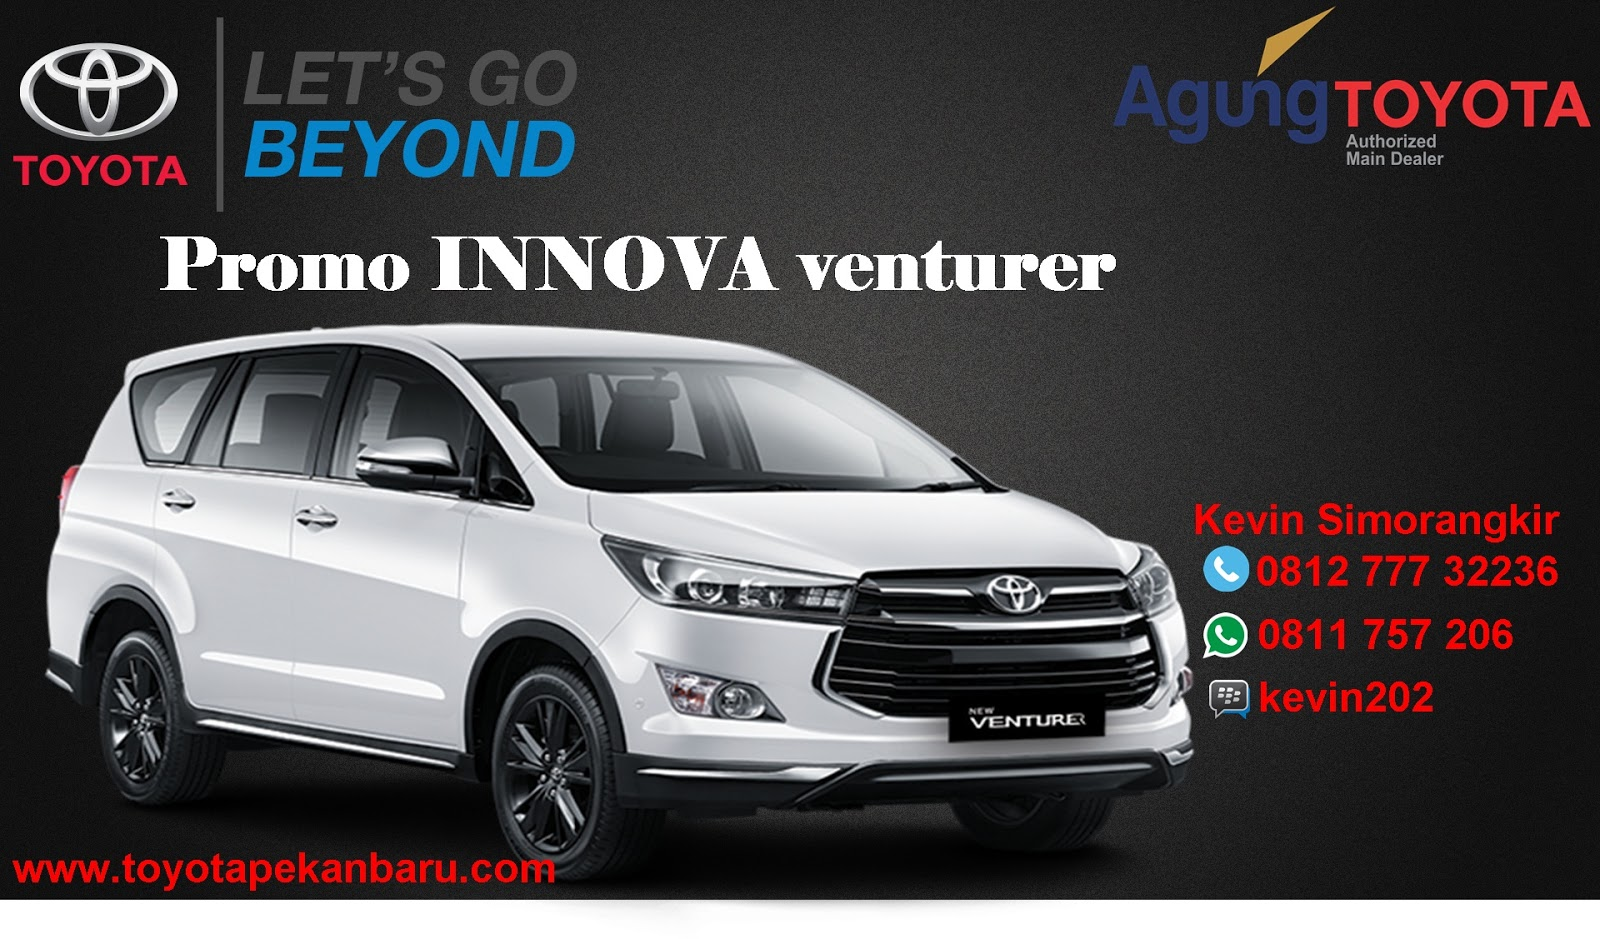 harga all new innova venturer 2018 toyota grand veloz 2015 info promo april pekanbaru riau